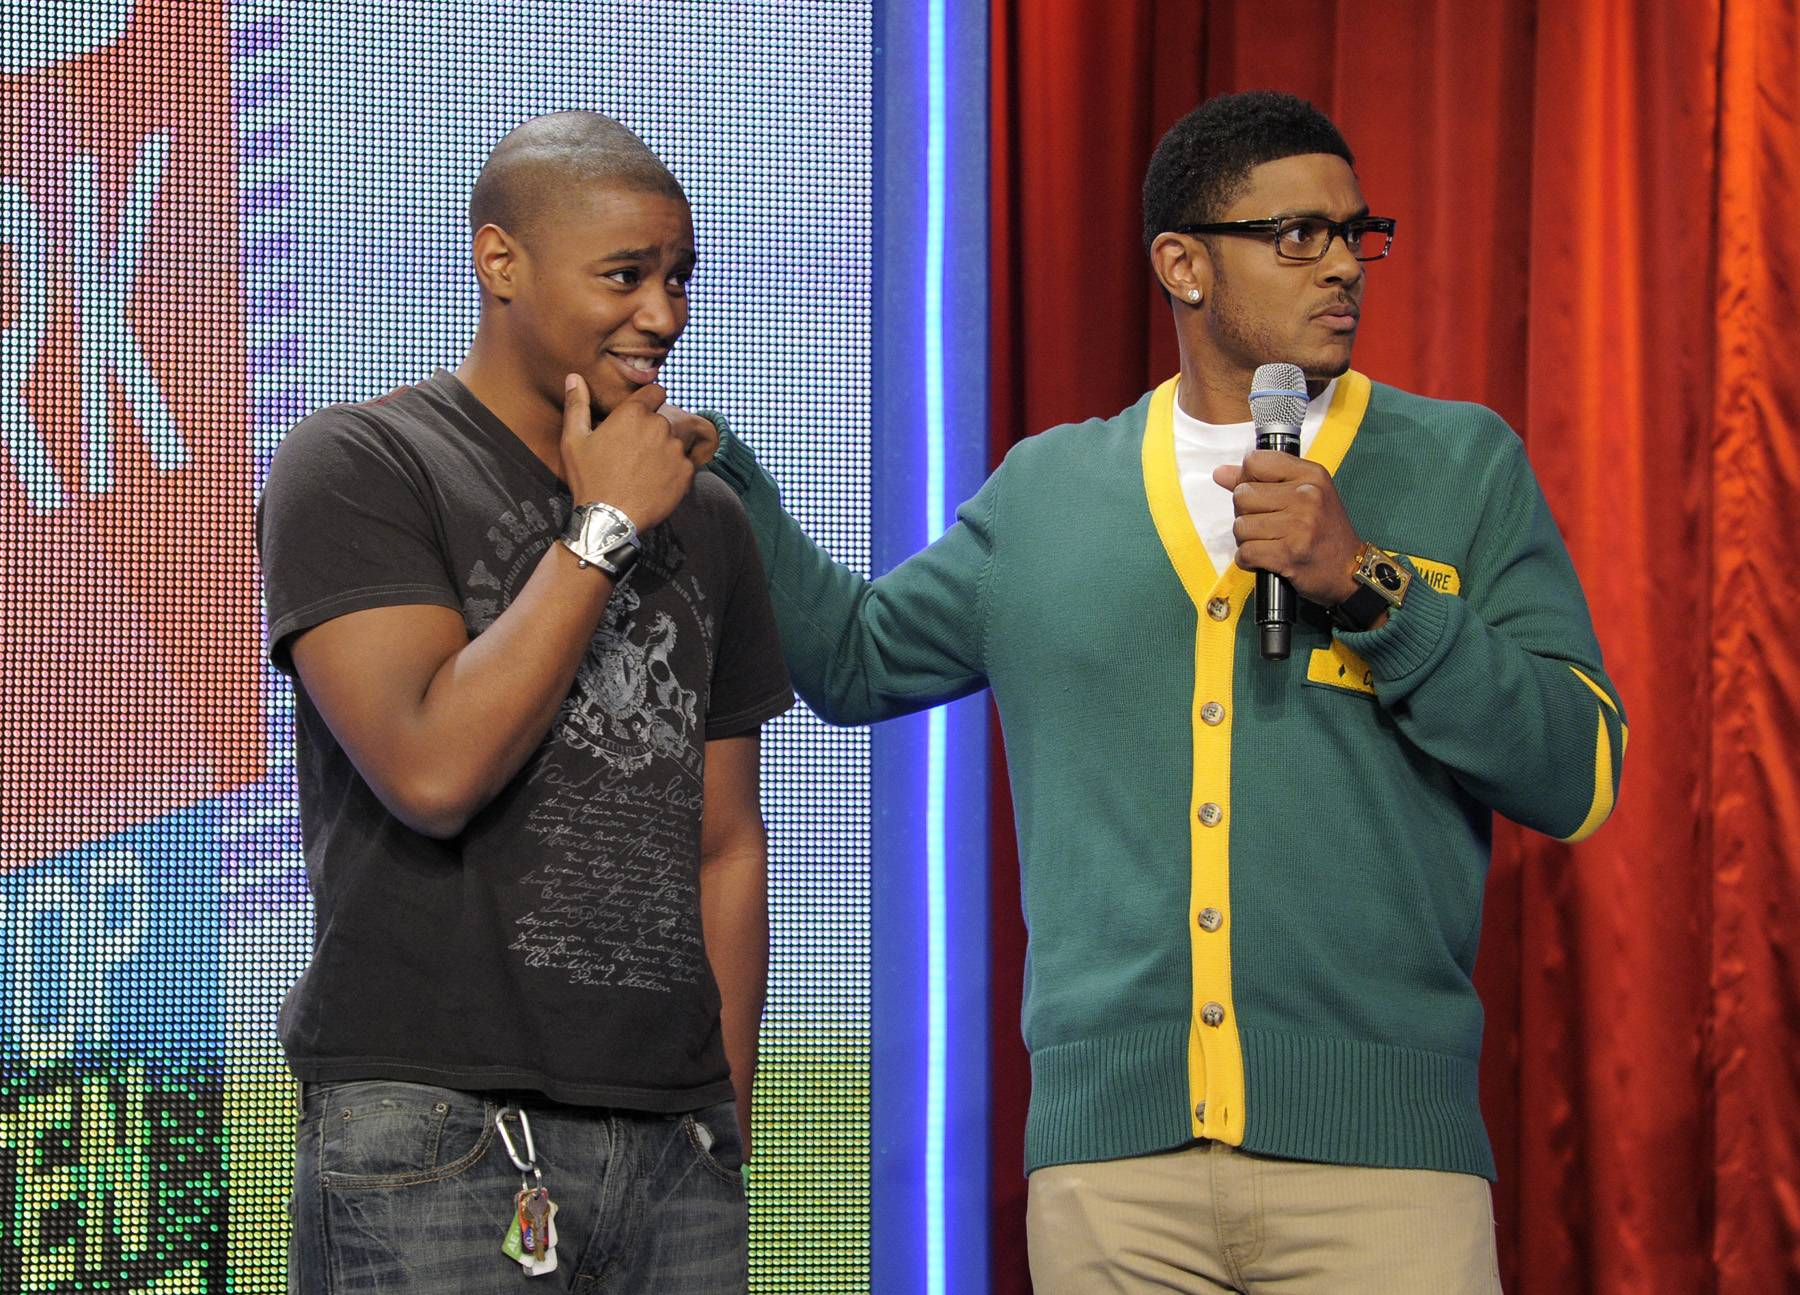 Perplexed By The Fact? - Rocsi Diaz and Pooch Hall does random facts with audience members at 106 & Park, April 12, 2012.(Photo: John Ricard / BET)